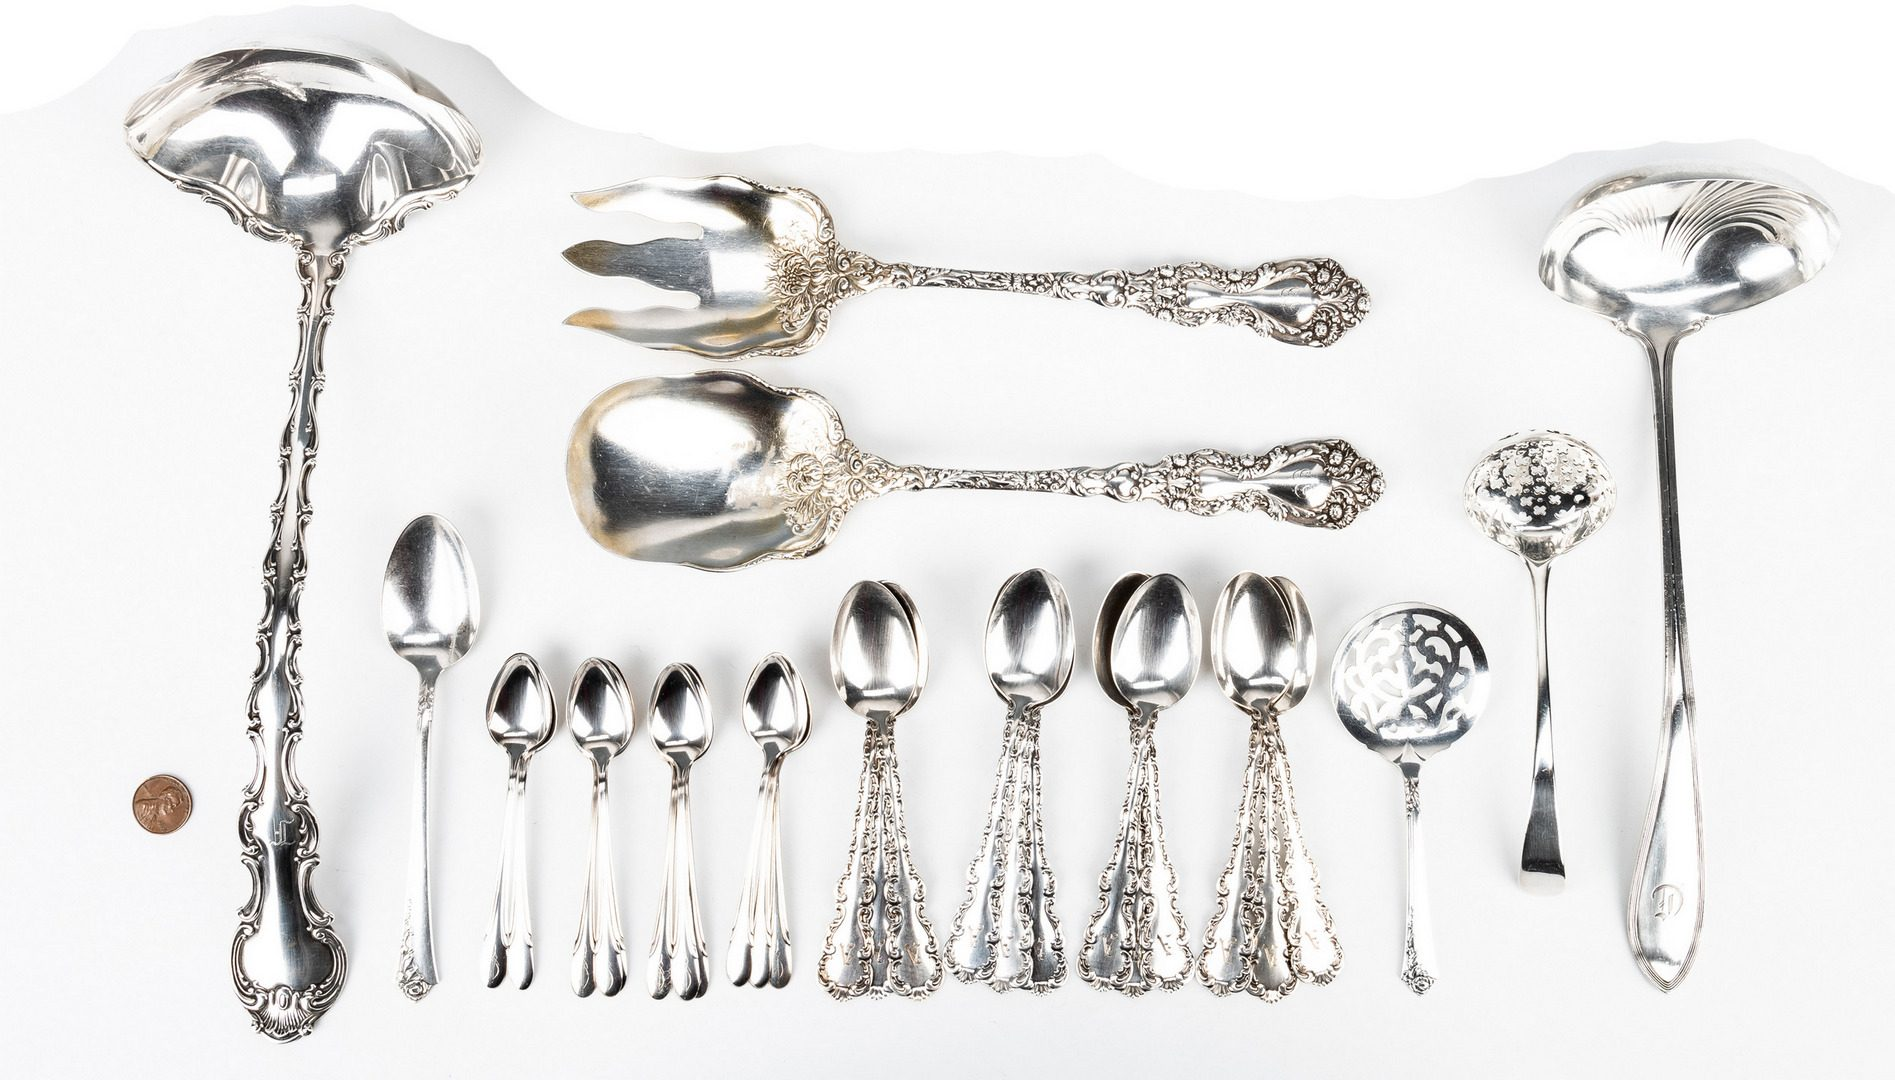 Lot 850: 30 Pcs. Assorted Sterling Silver Flatware